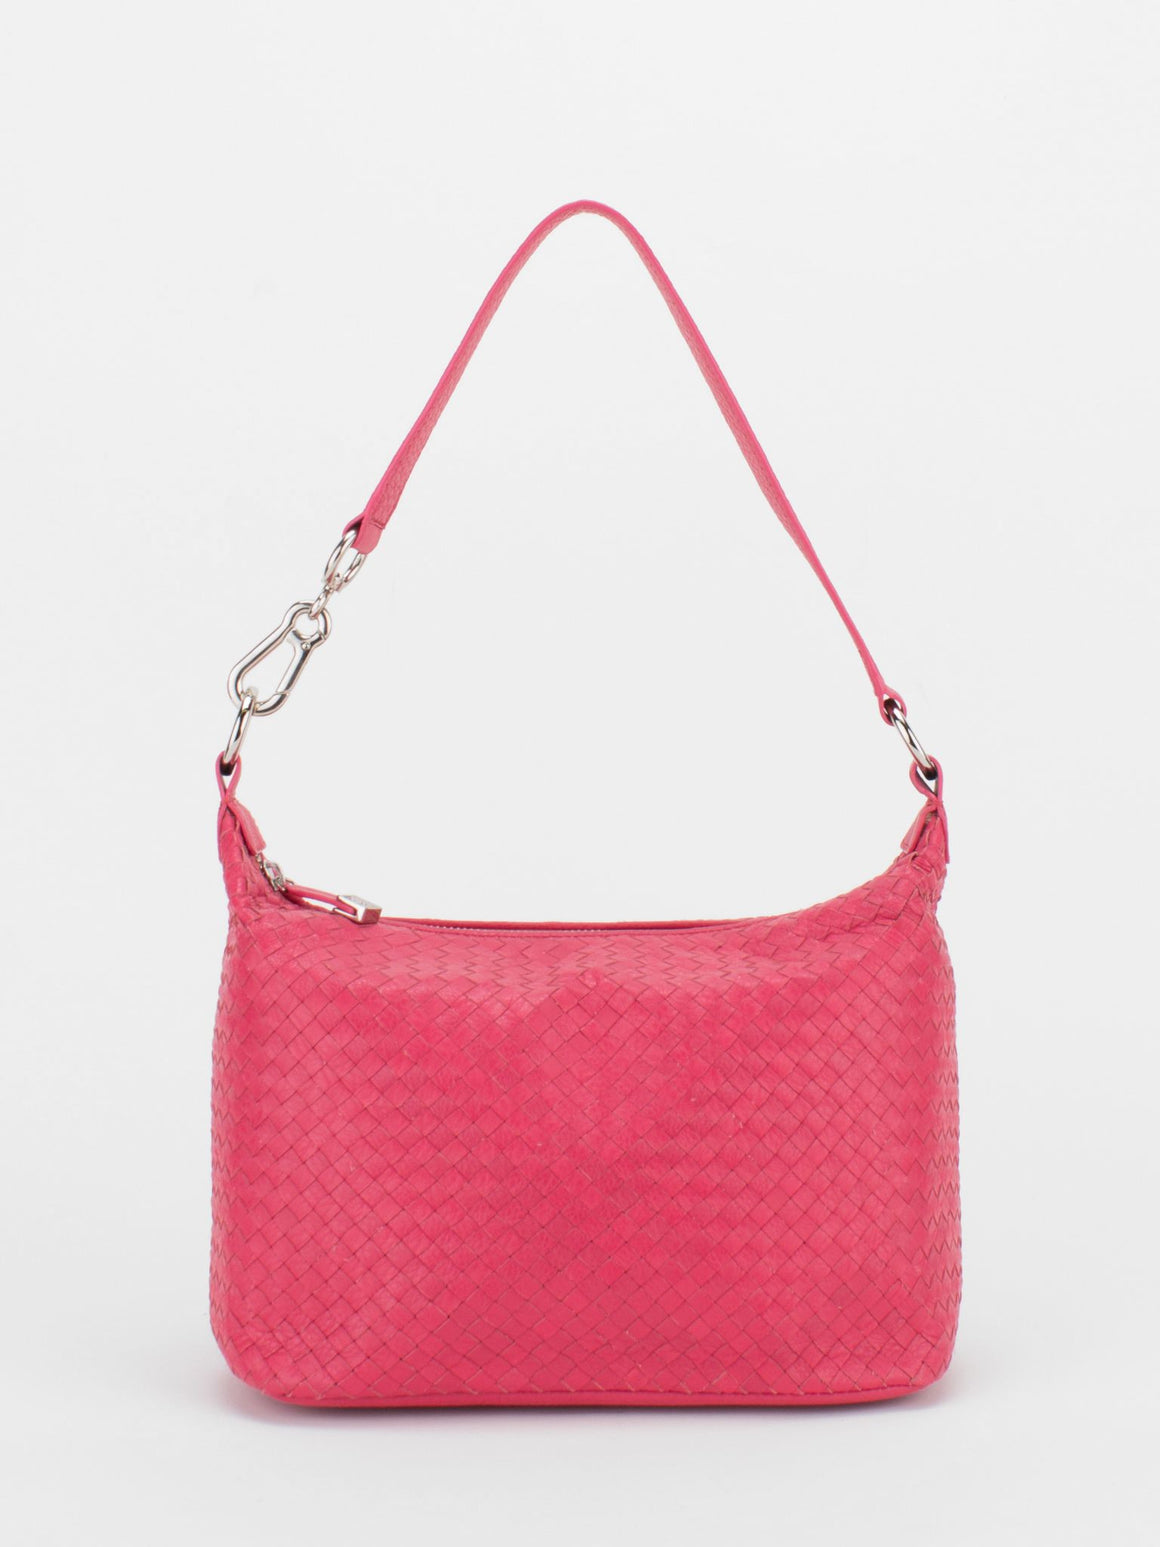 VENUS Woven Leather Hobo - Pink